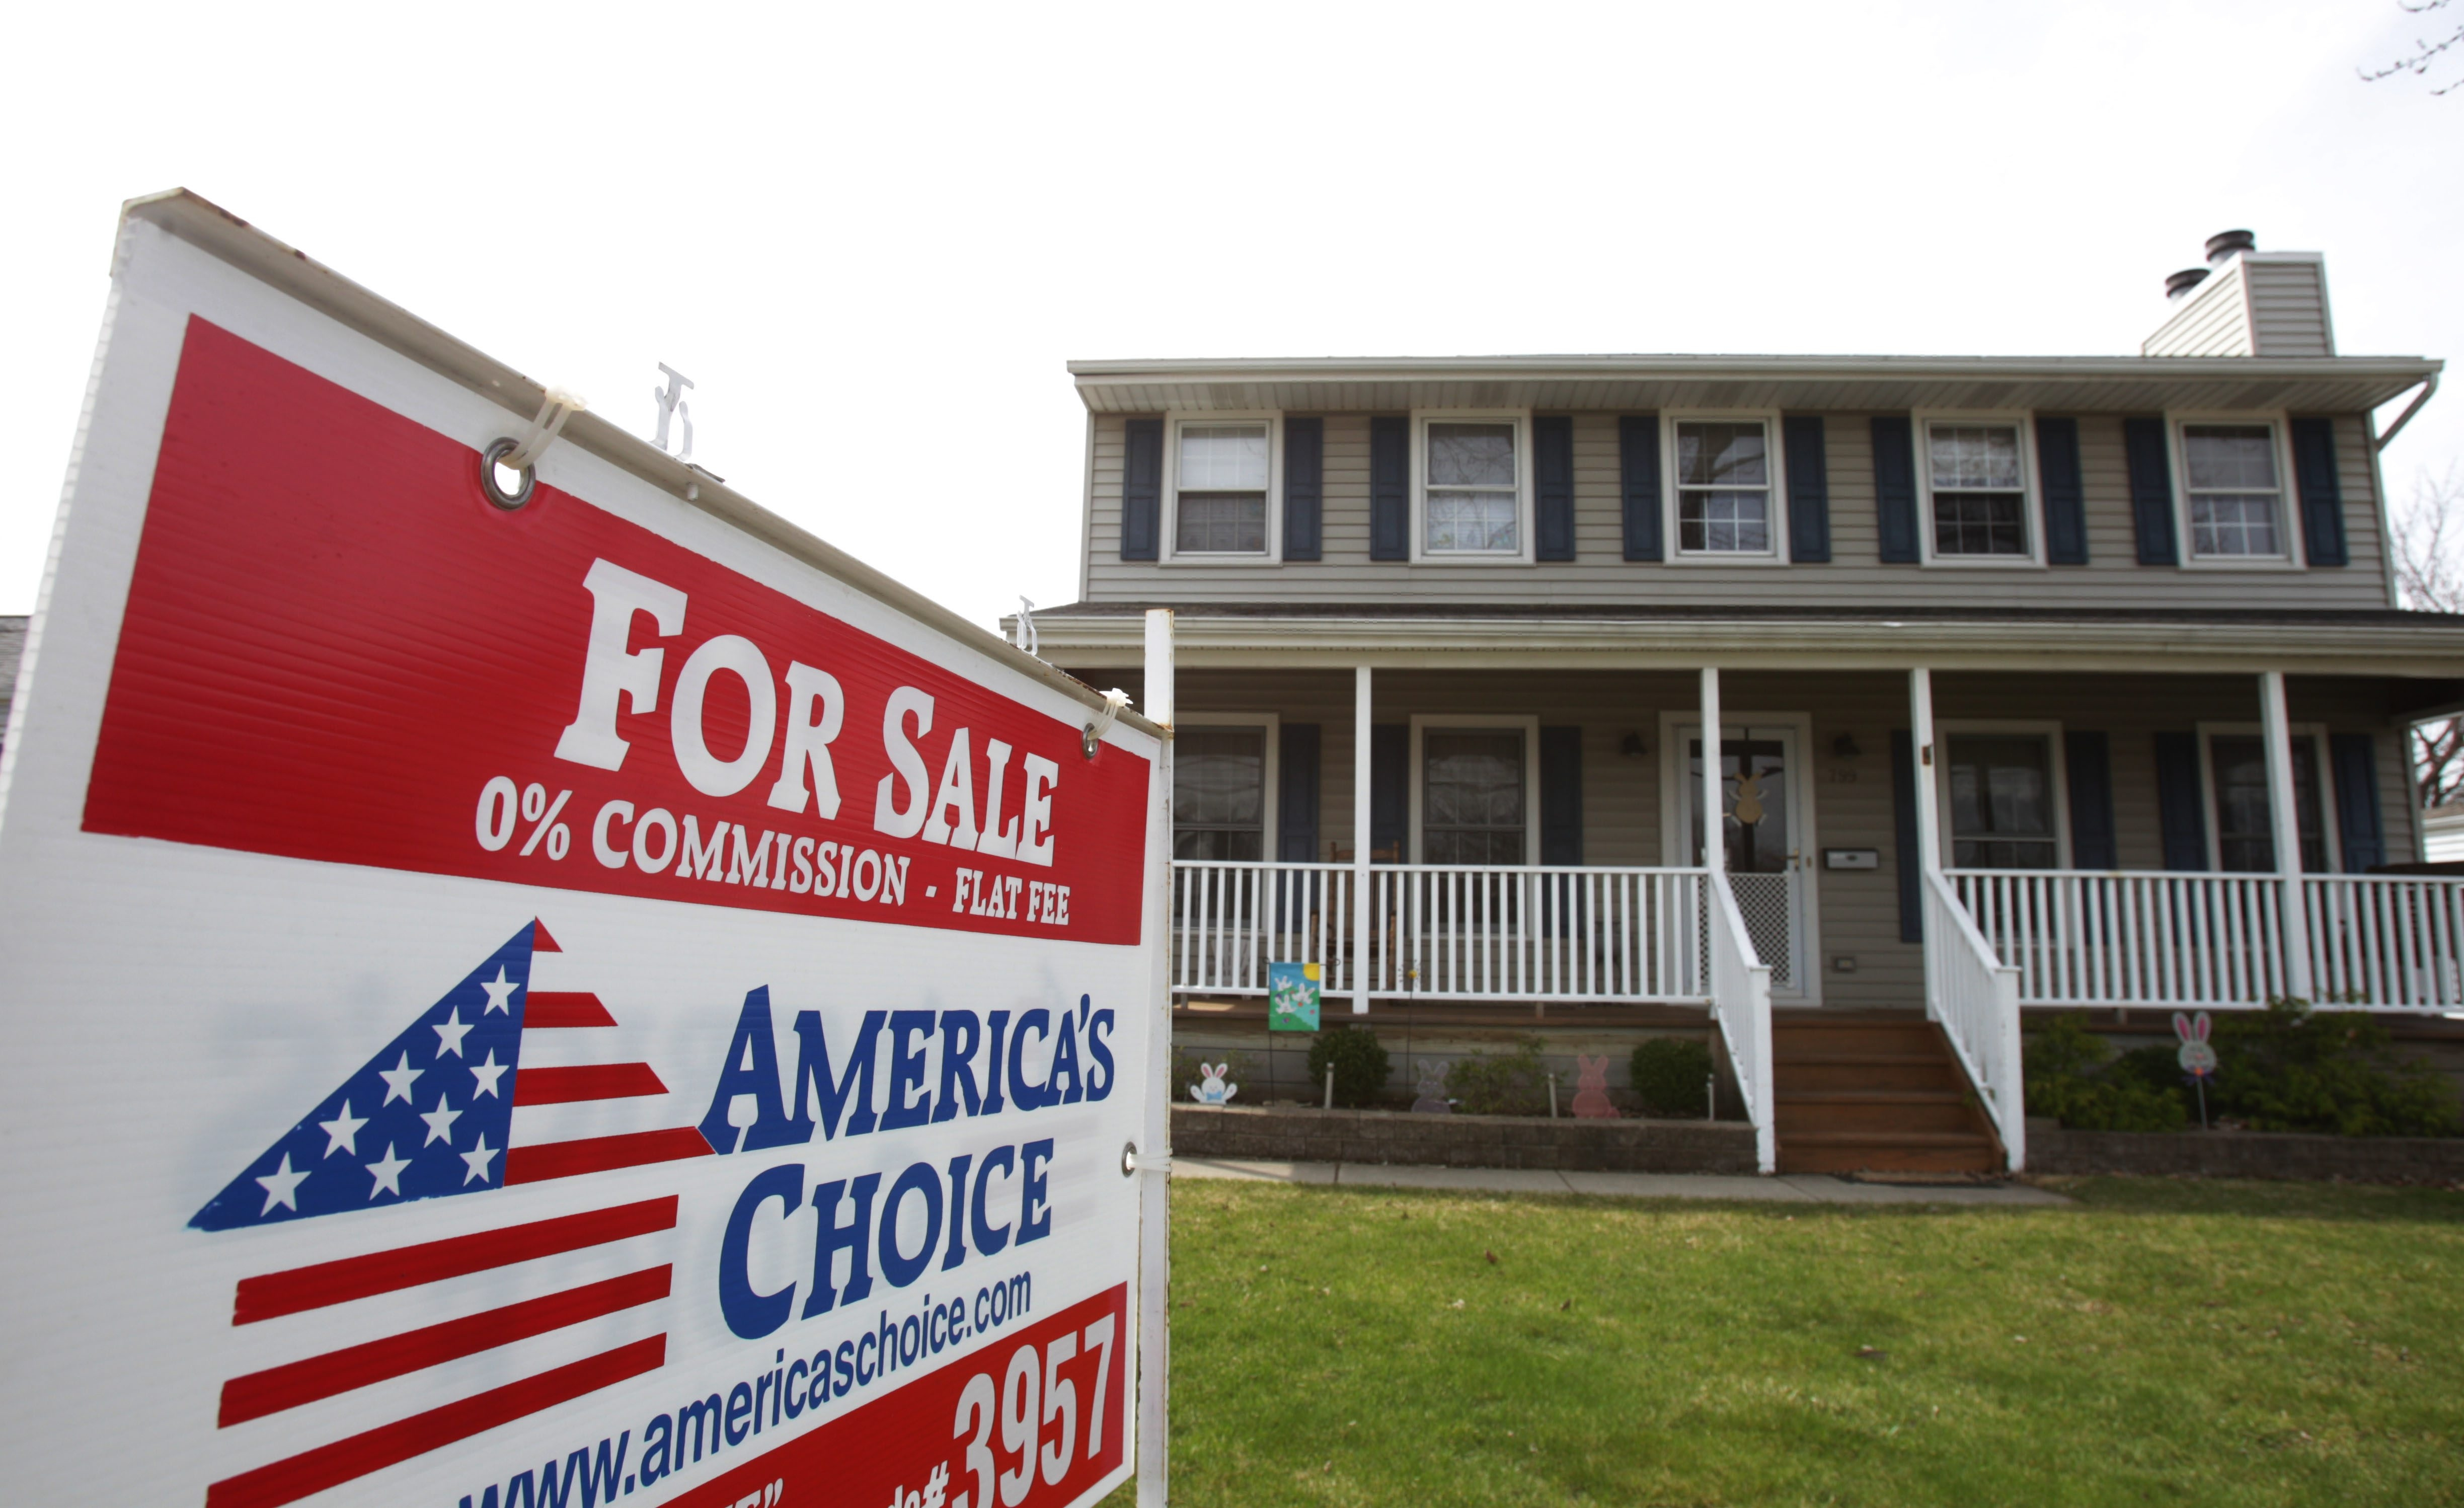 Through July, home sales for 2014 are down 5.2 percent, and the average home price dropped 7.4 percent.